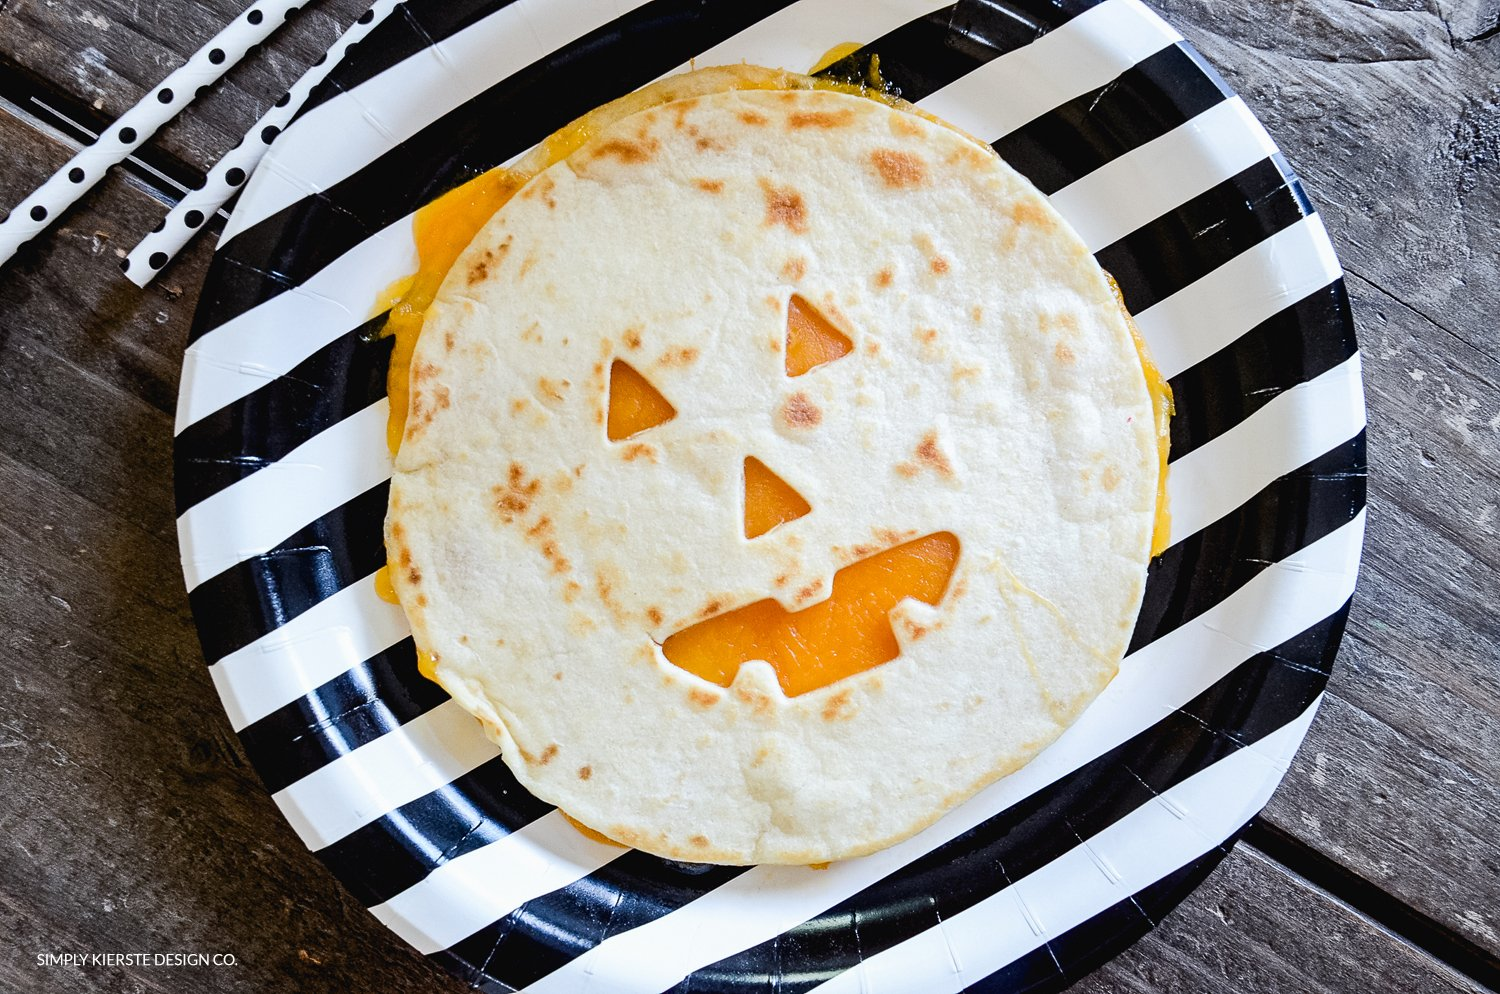 Jack-o-lantern Quesadillas | Easy Halloween Ideas | oldsaltfarm.com